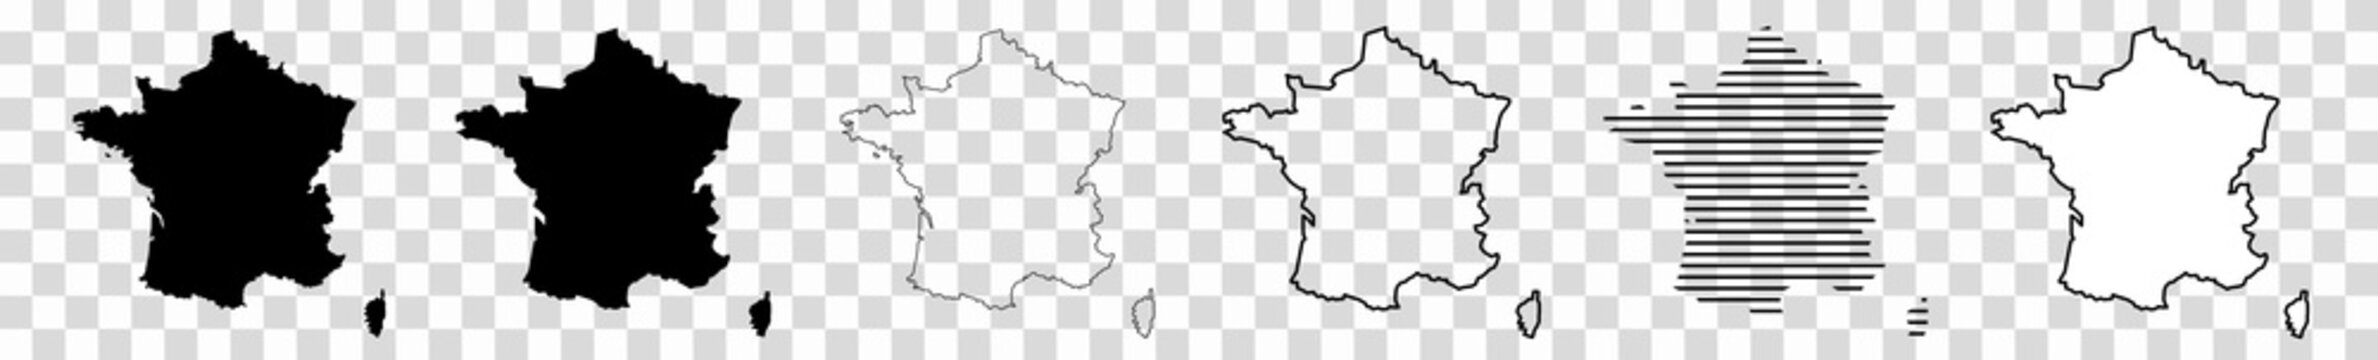 France Map Black | French Border | State Country | Transparent Isolated | Variations